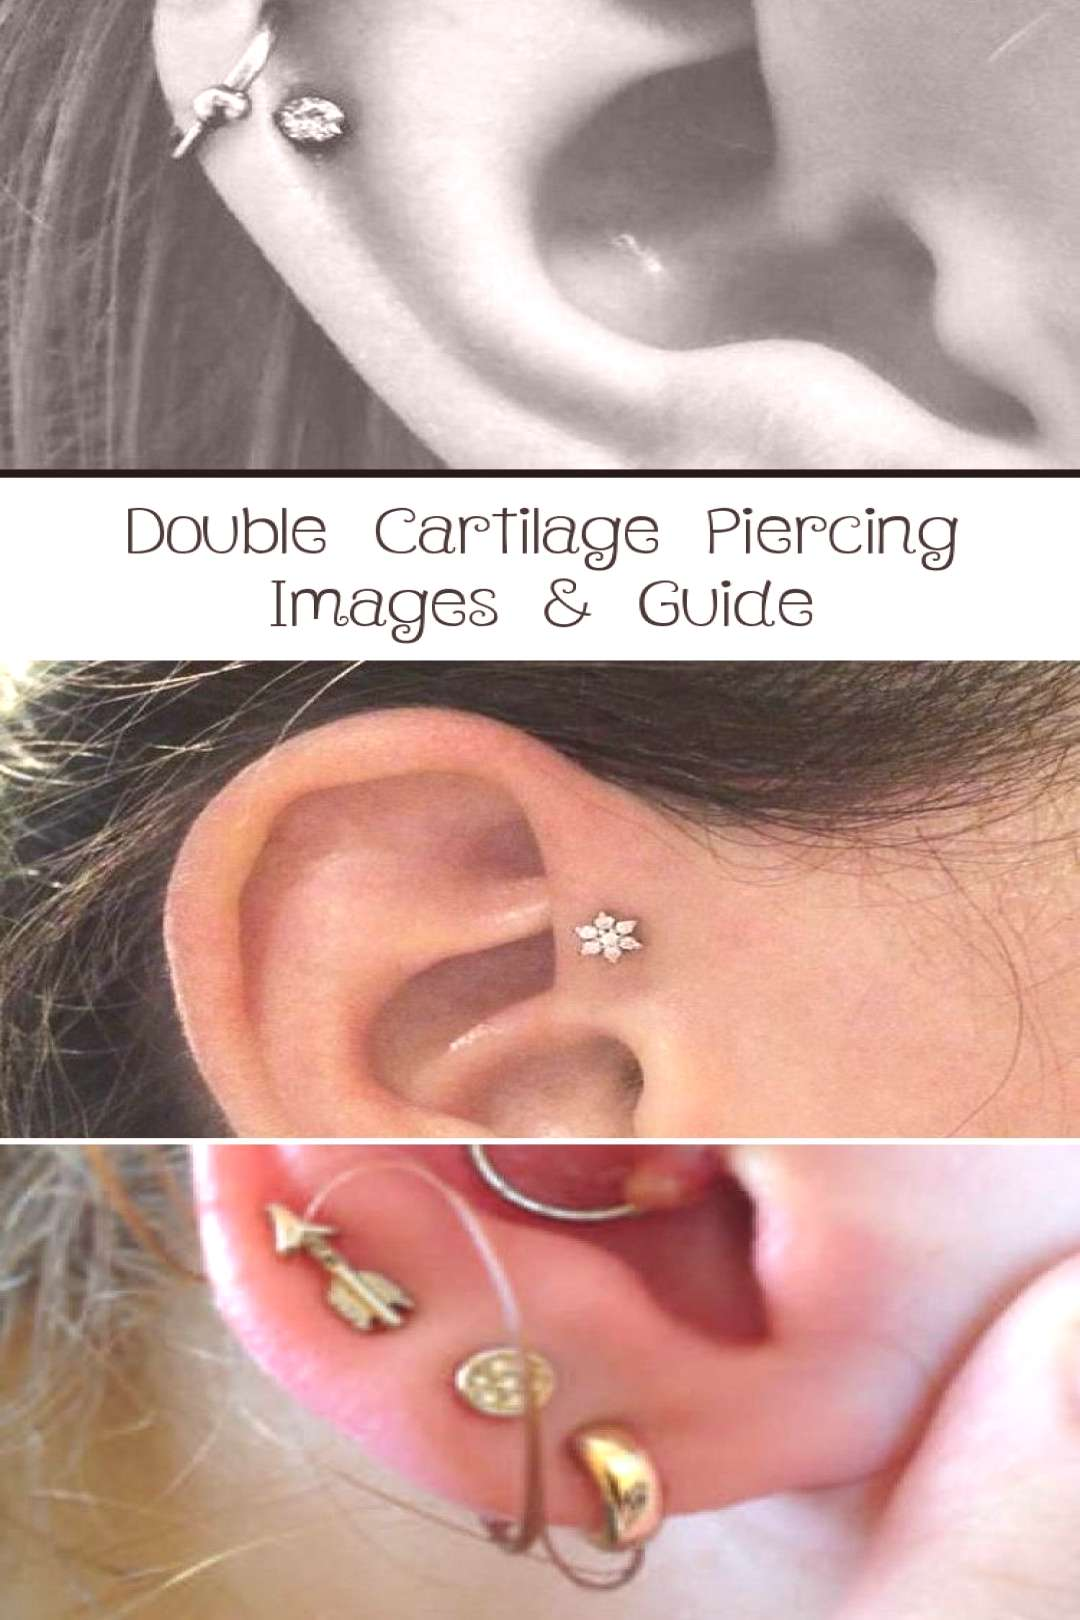 Double Cartilage Piercing Images & Guide - PIERCINGS - ... - Double Cartilage Piercing Images & Gui